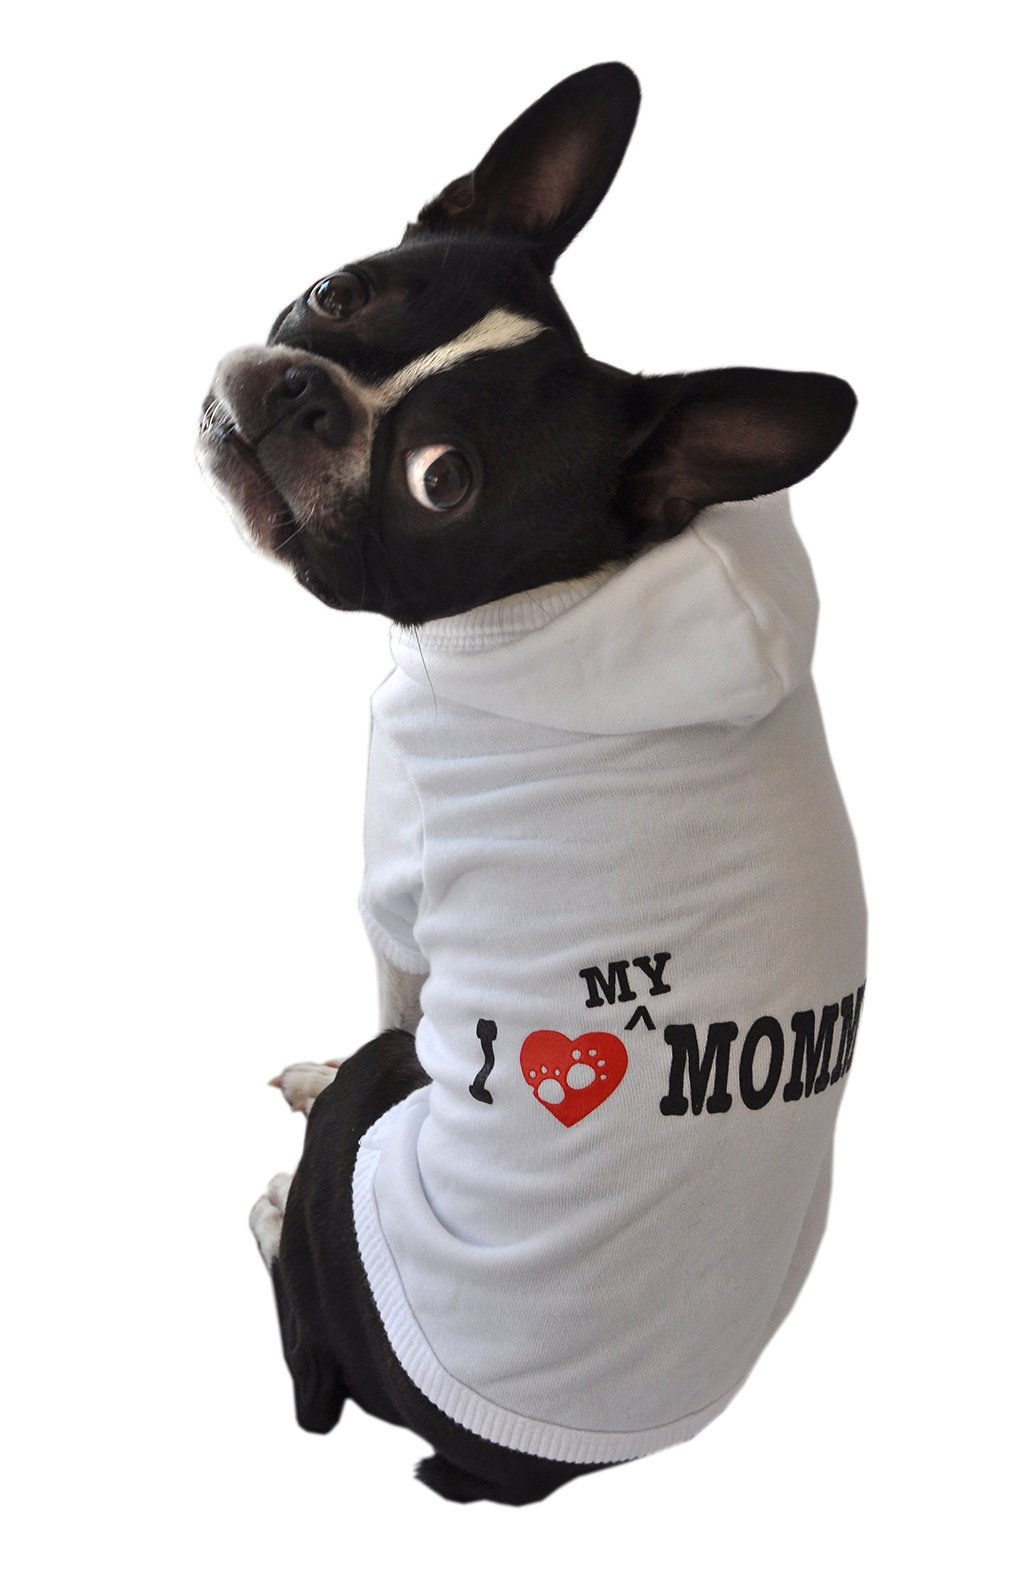 Ruff Ruff and Meow Dog Hoodie, I Love My Mommy, White, Large by Ruff Ruff and Meow